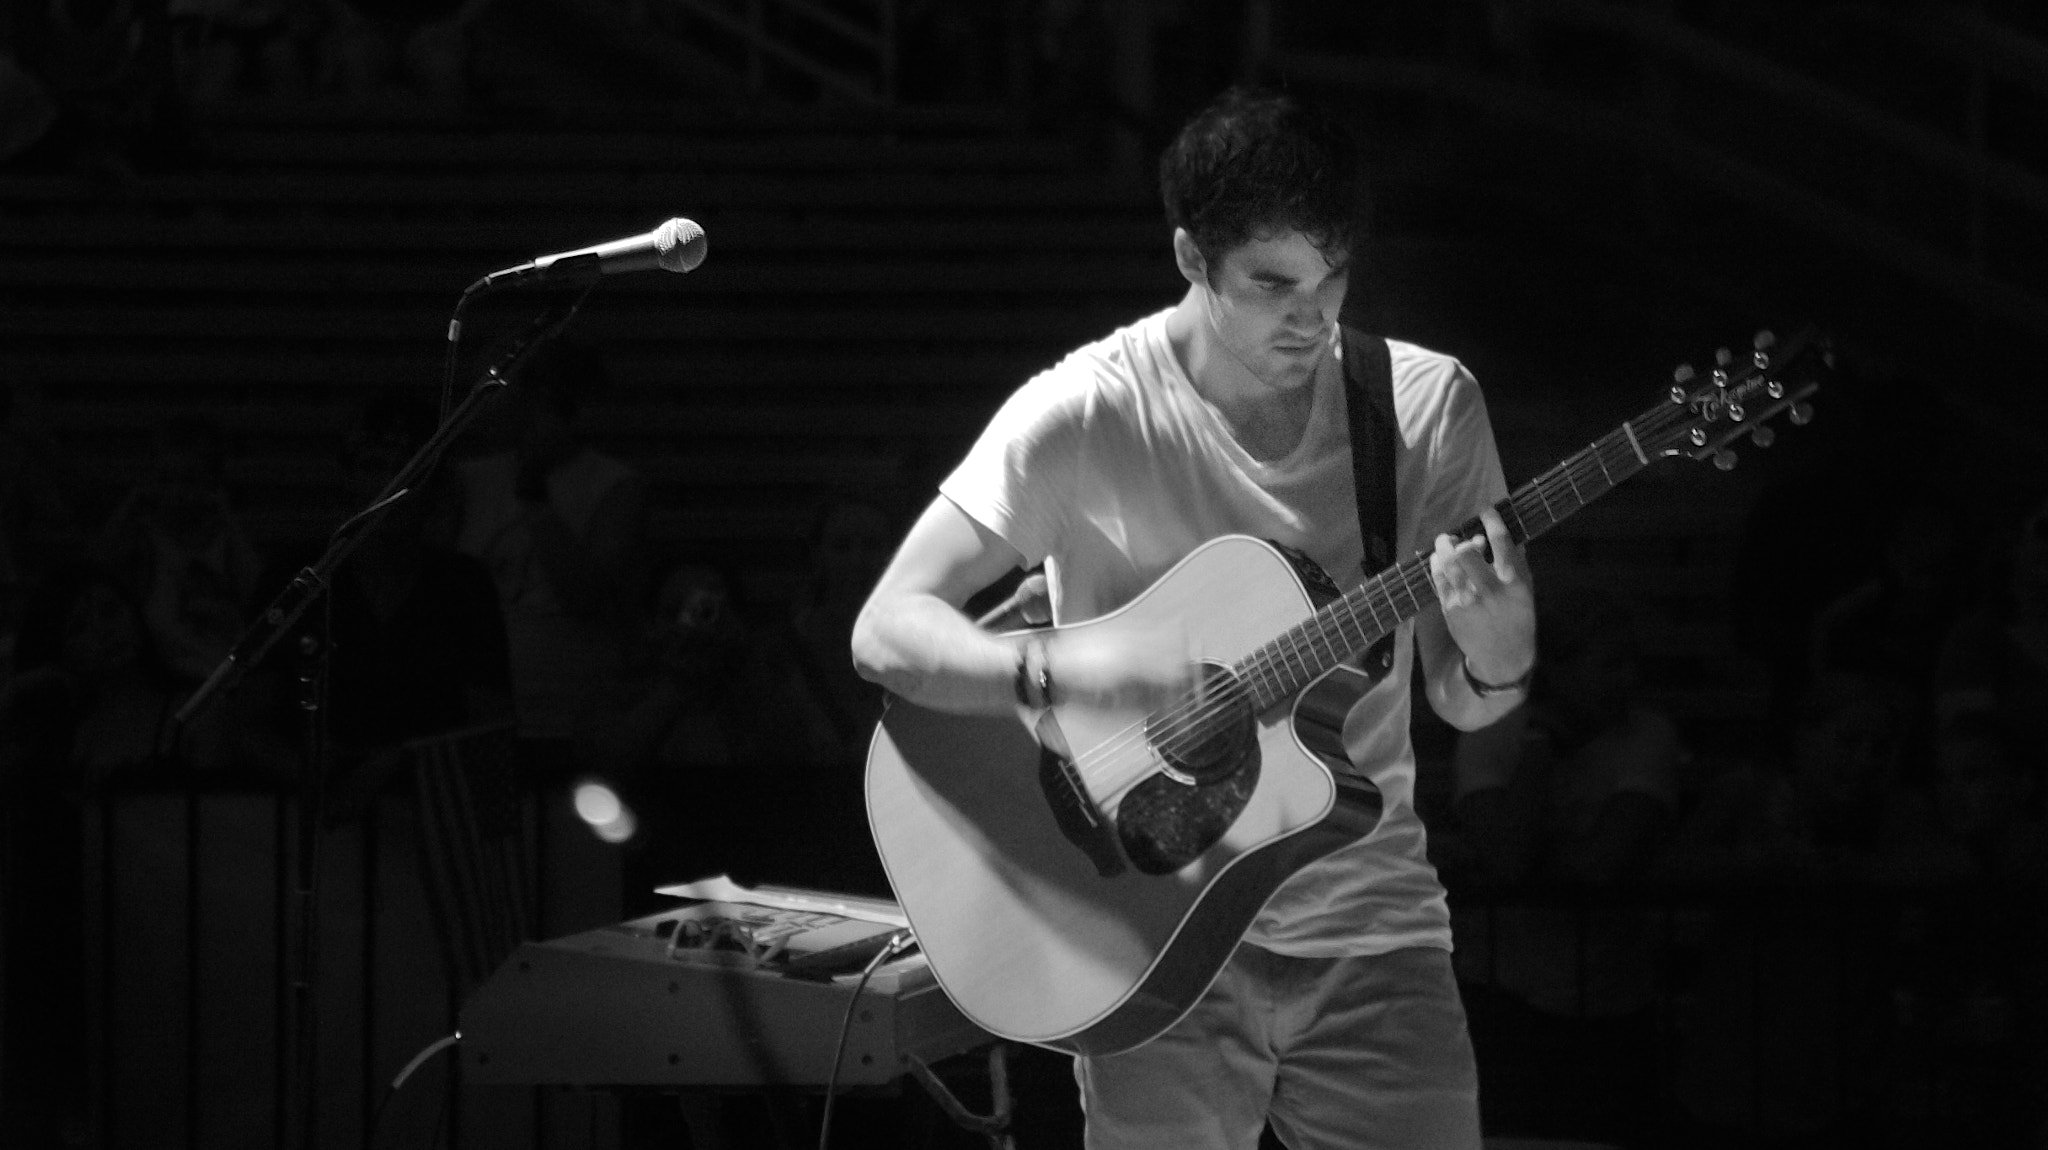 Photograph Darren Criss at Six Flags St. Louis July 21, 2011 by mitch aunger on 500px